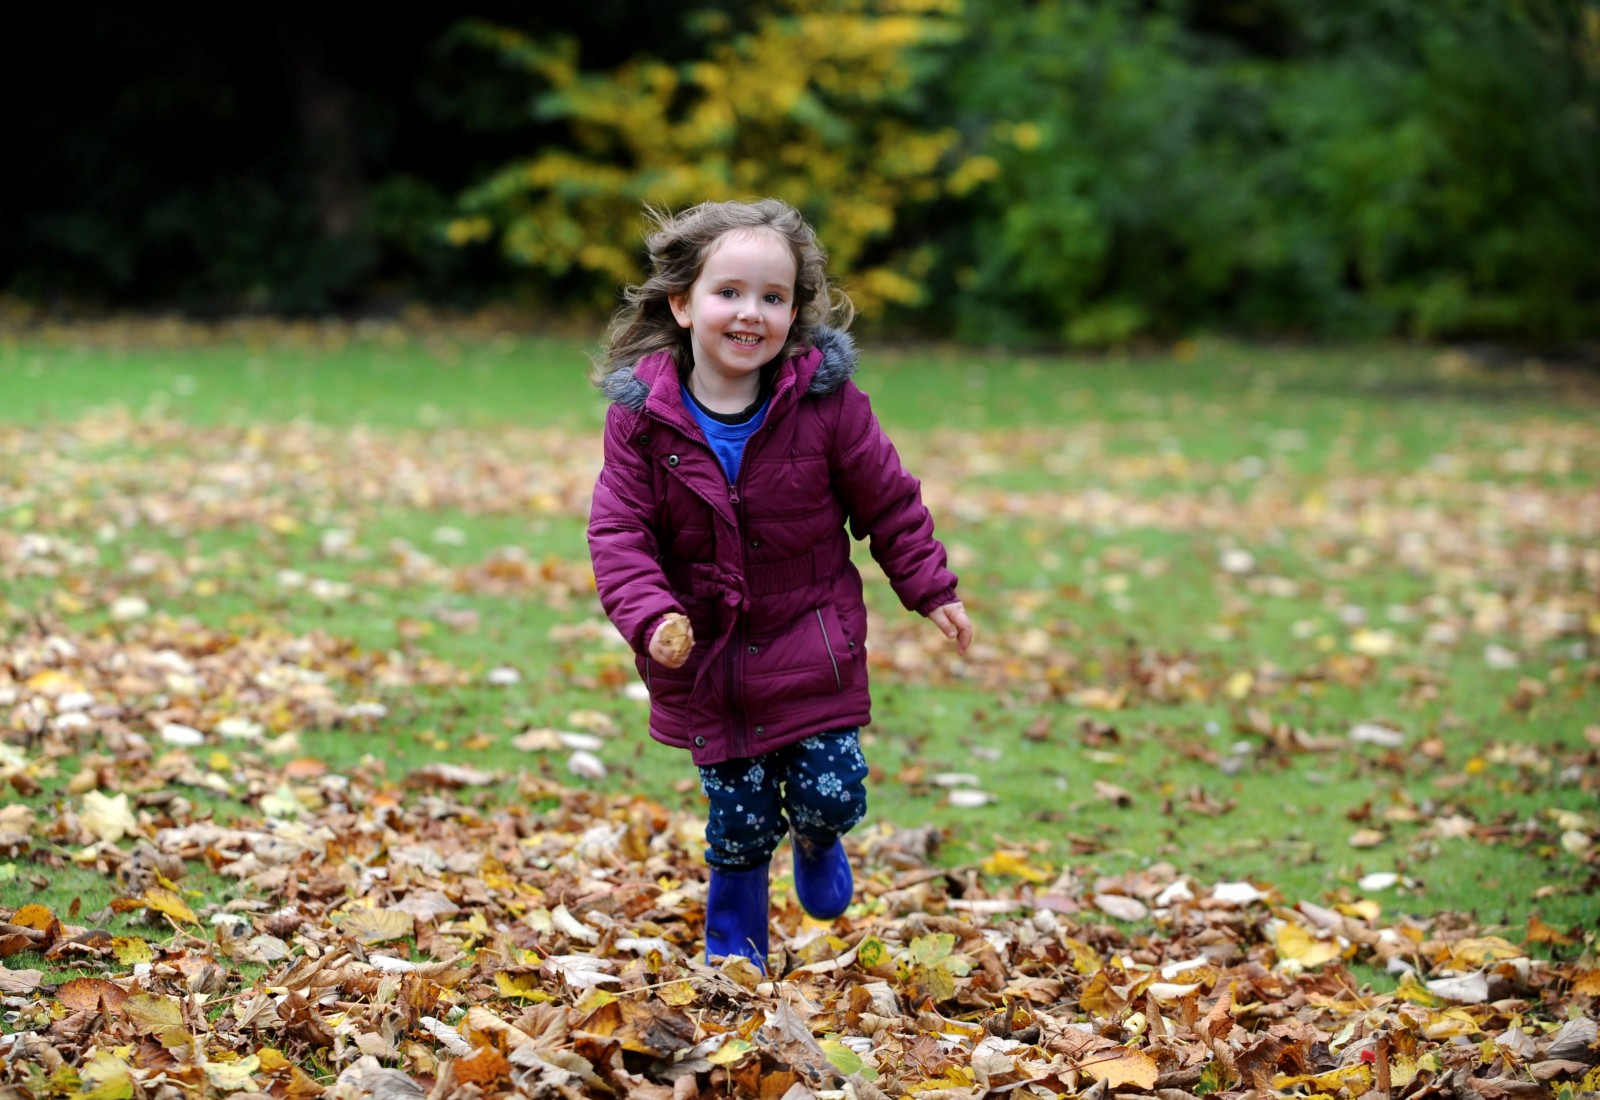 The touching reason why this 4-year-old girl will walk 500 MILES this year